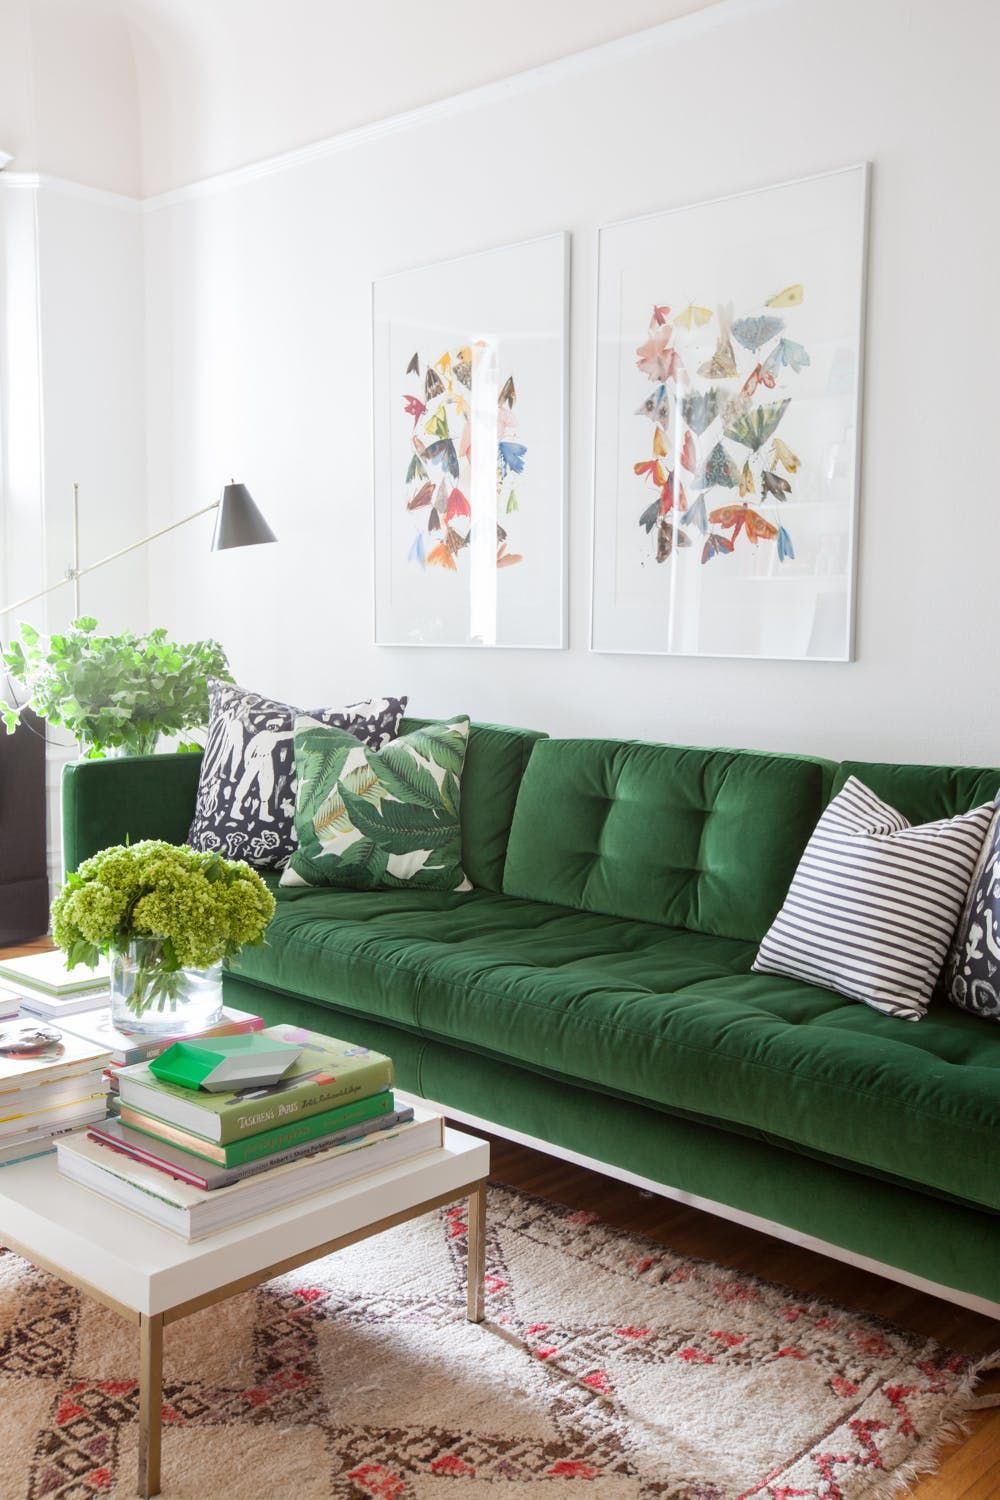 The Couch Trend for 2017: Stylish Emerald Green Sofas | Living rooms ...